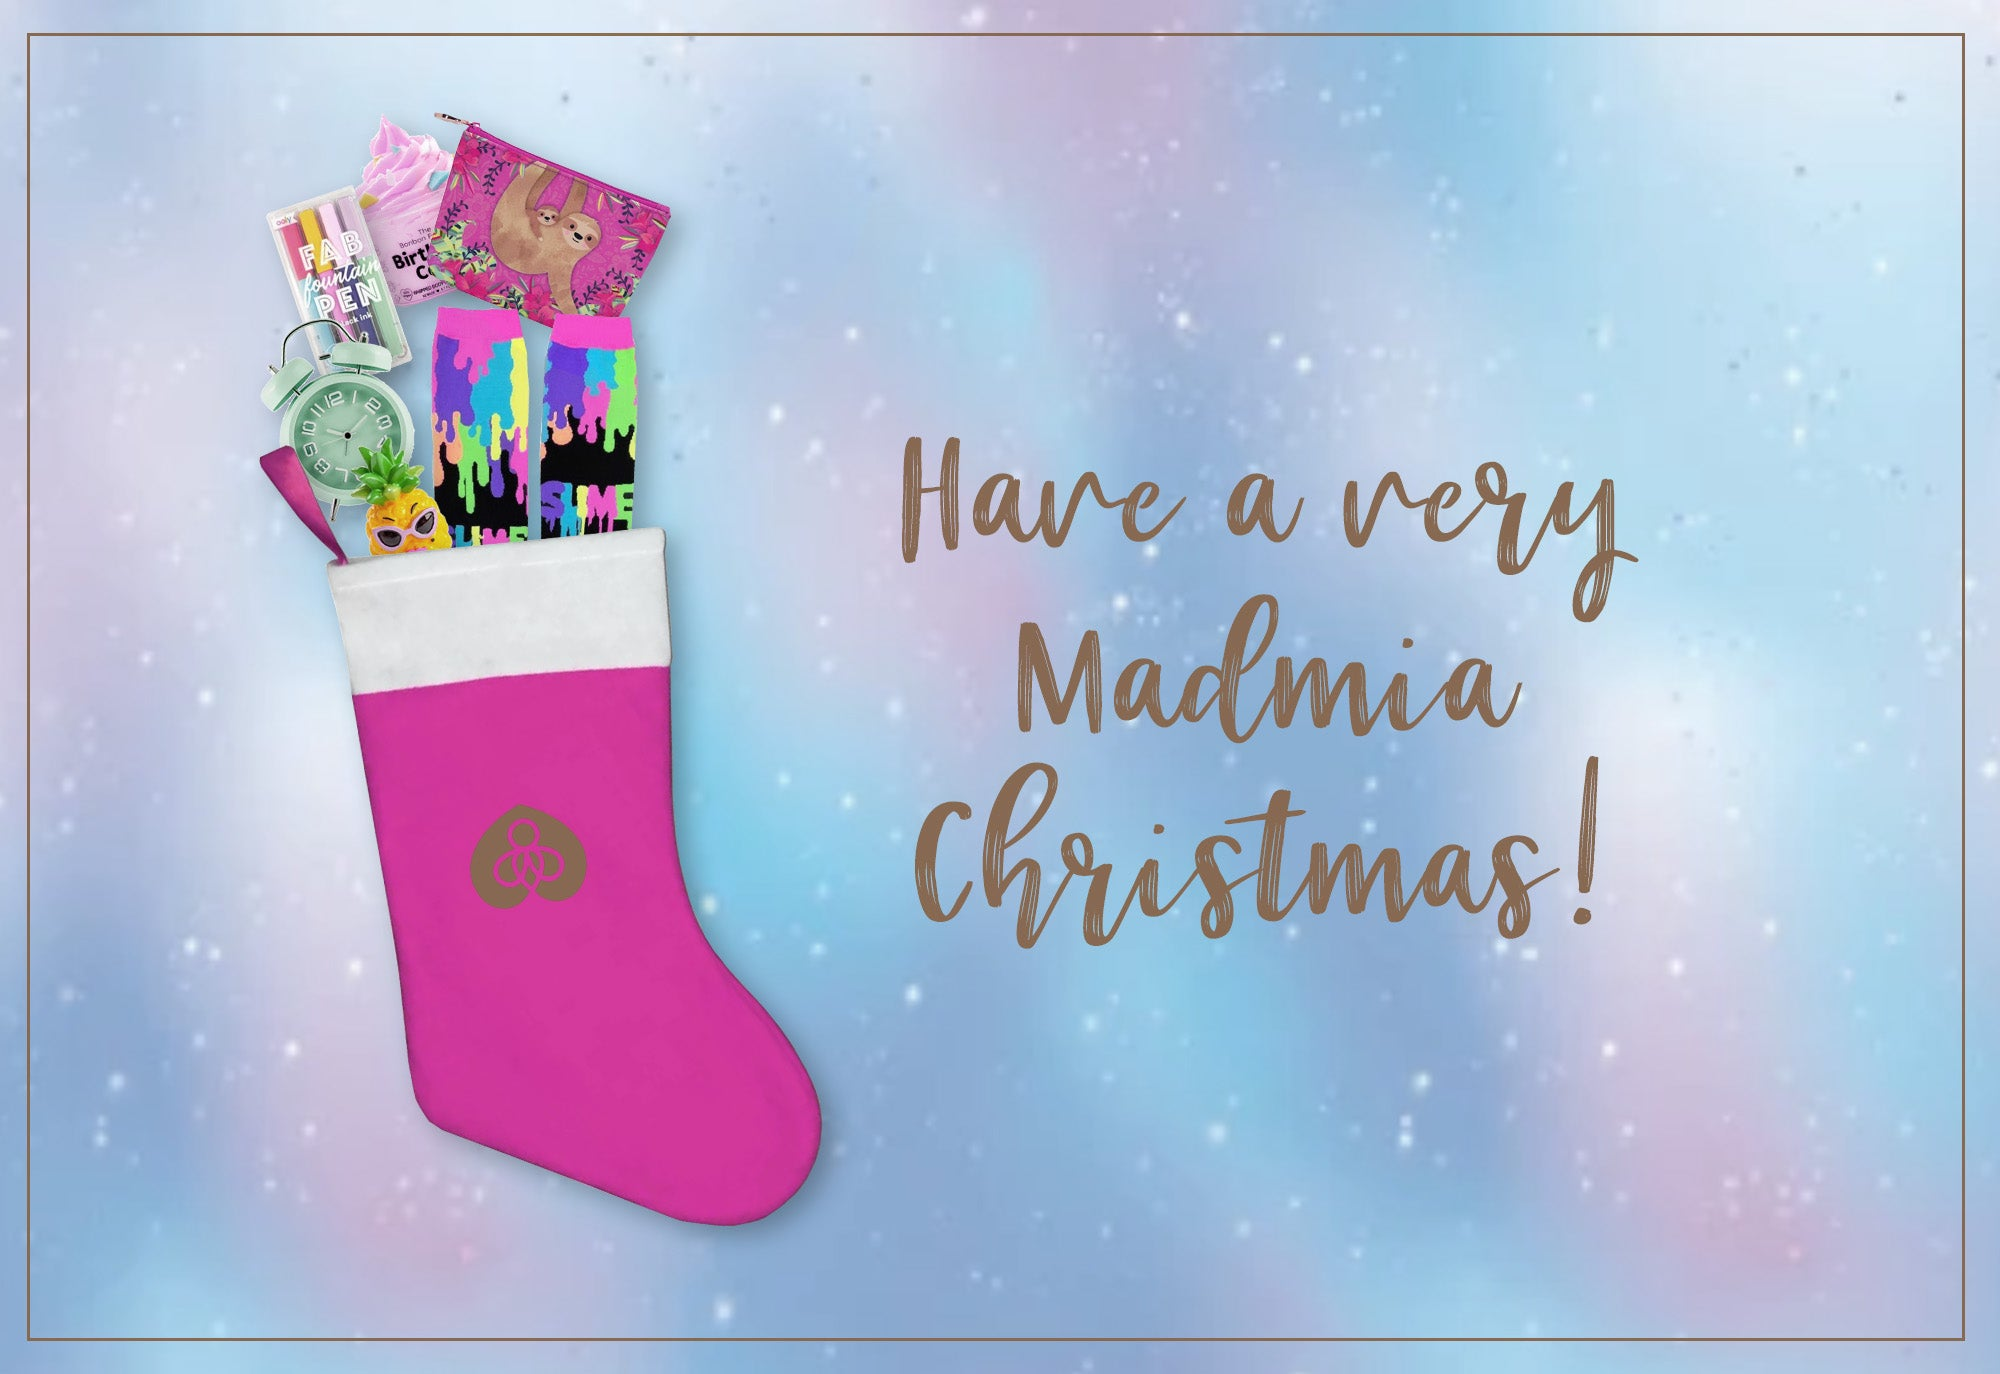 You can't go wrong with a Christmas stocking packed with goodies from Harper Bee and Madmia.